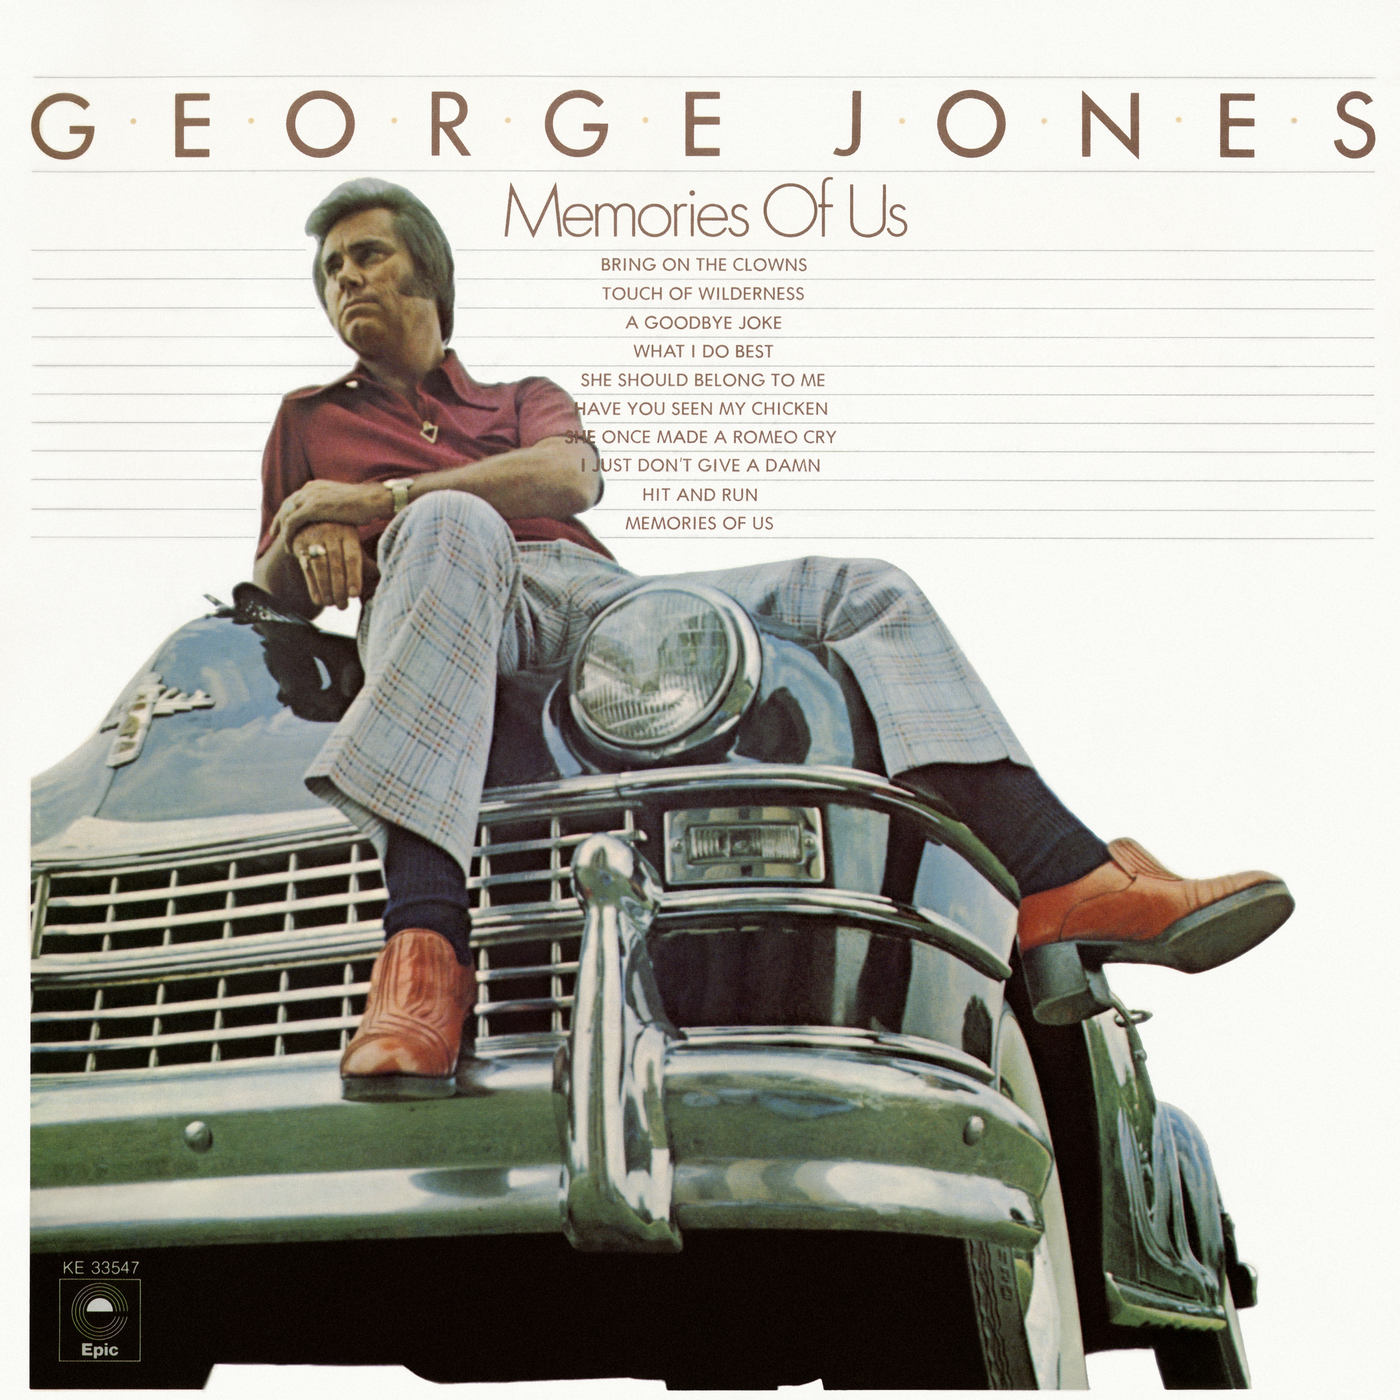 Memories of Us - George Jones